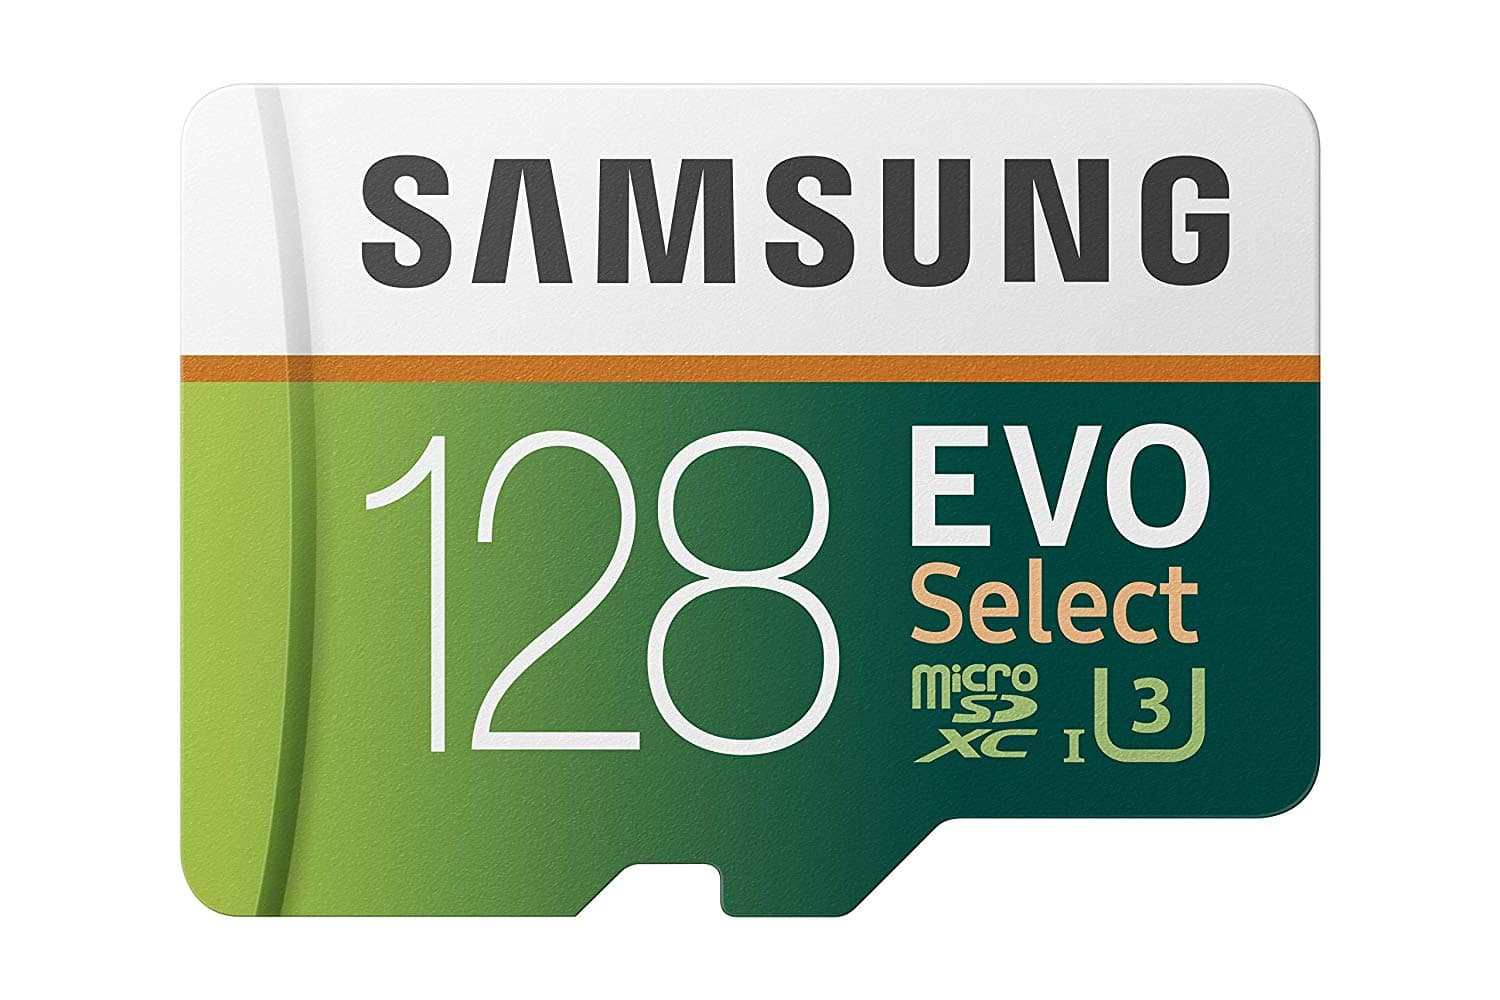 Samsung 128GB EVO Select Class 10 Micro SDXC card with Adapter $16.99 at Amazon (+15% cash back with Amazon Prime CC)